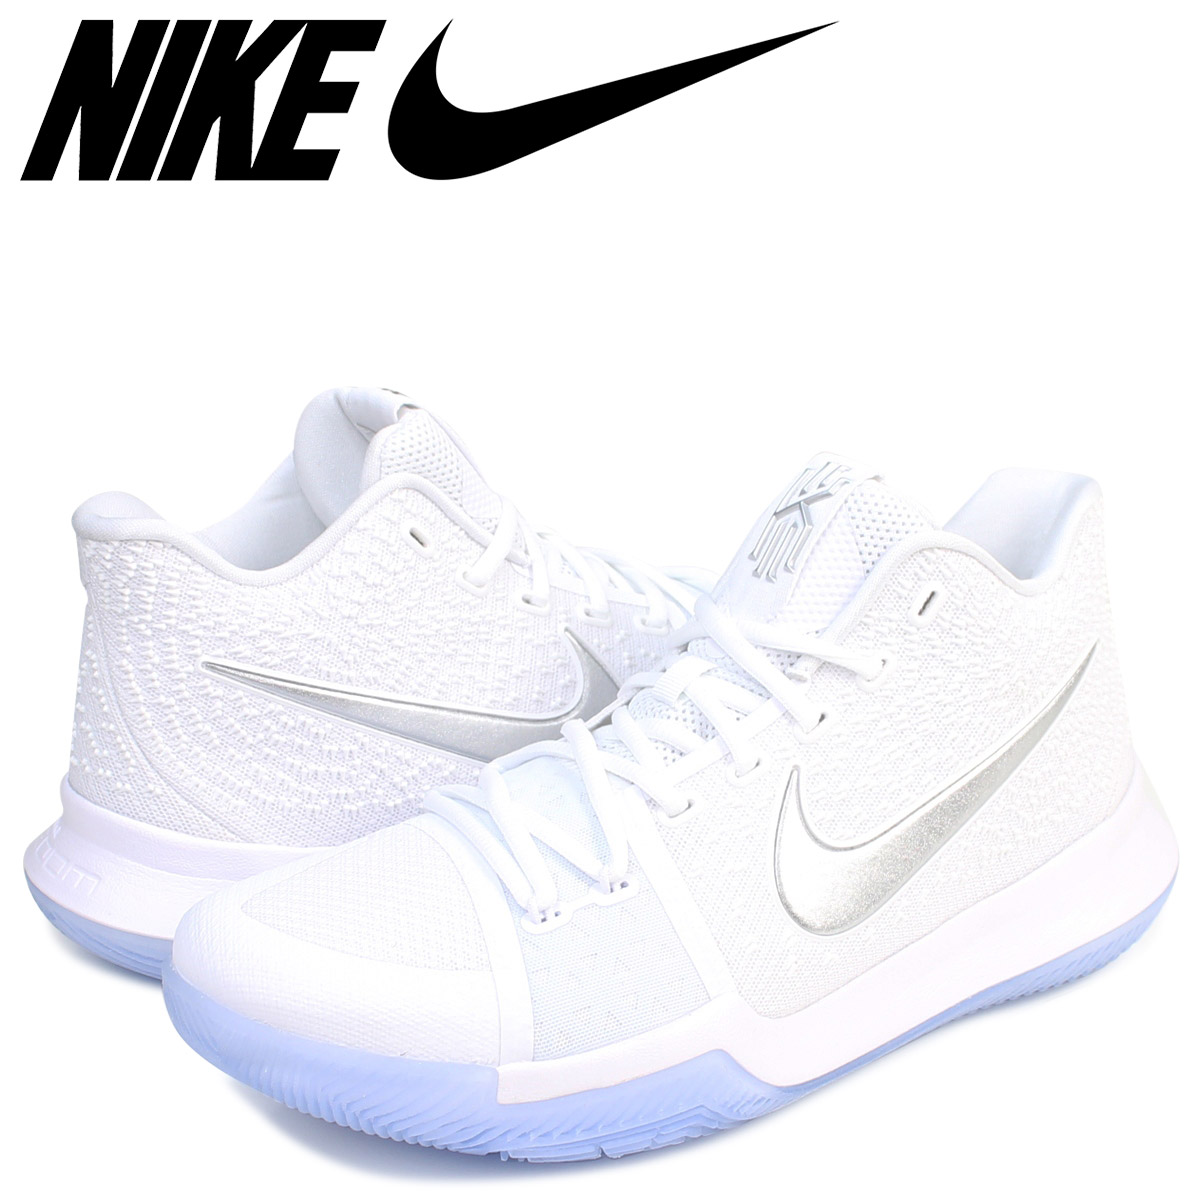 check out 5dab5 1b763 NIKE Nike chi Lee 3 sneakers NIKE KYRIE 3 EP DEEP FREEZE 852,396-103 chi  Lee Irving men shoes white